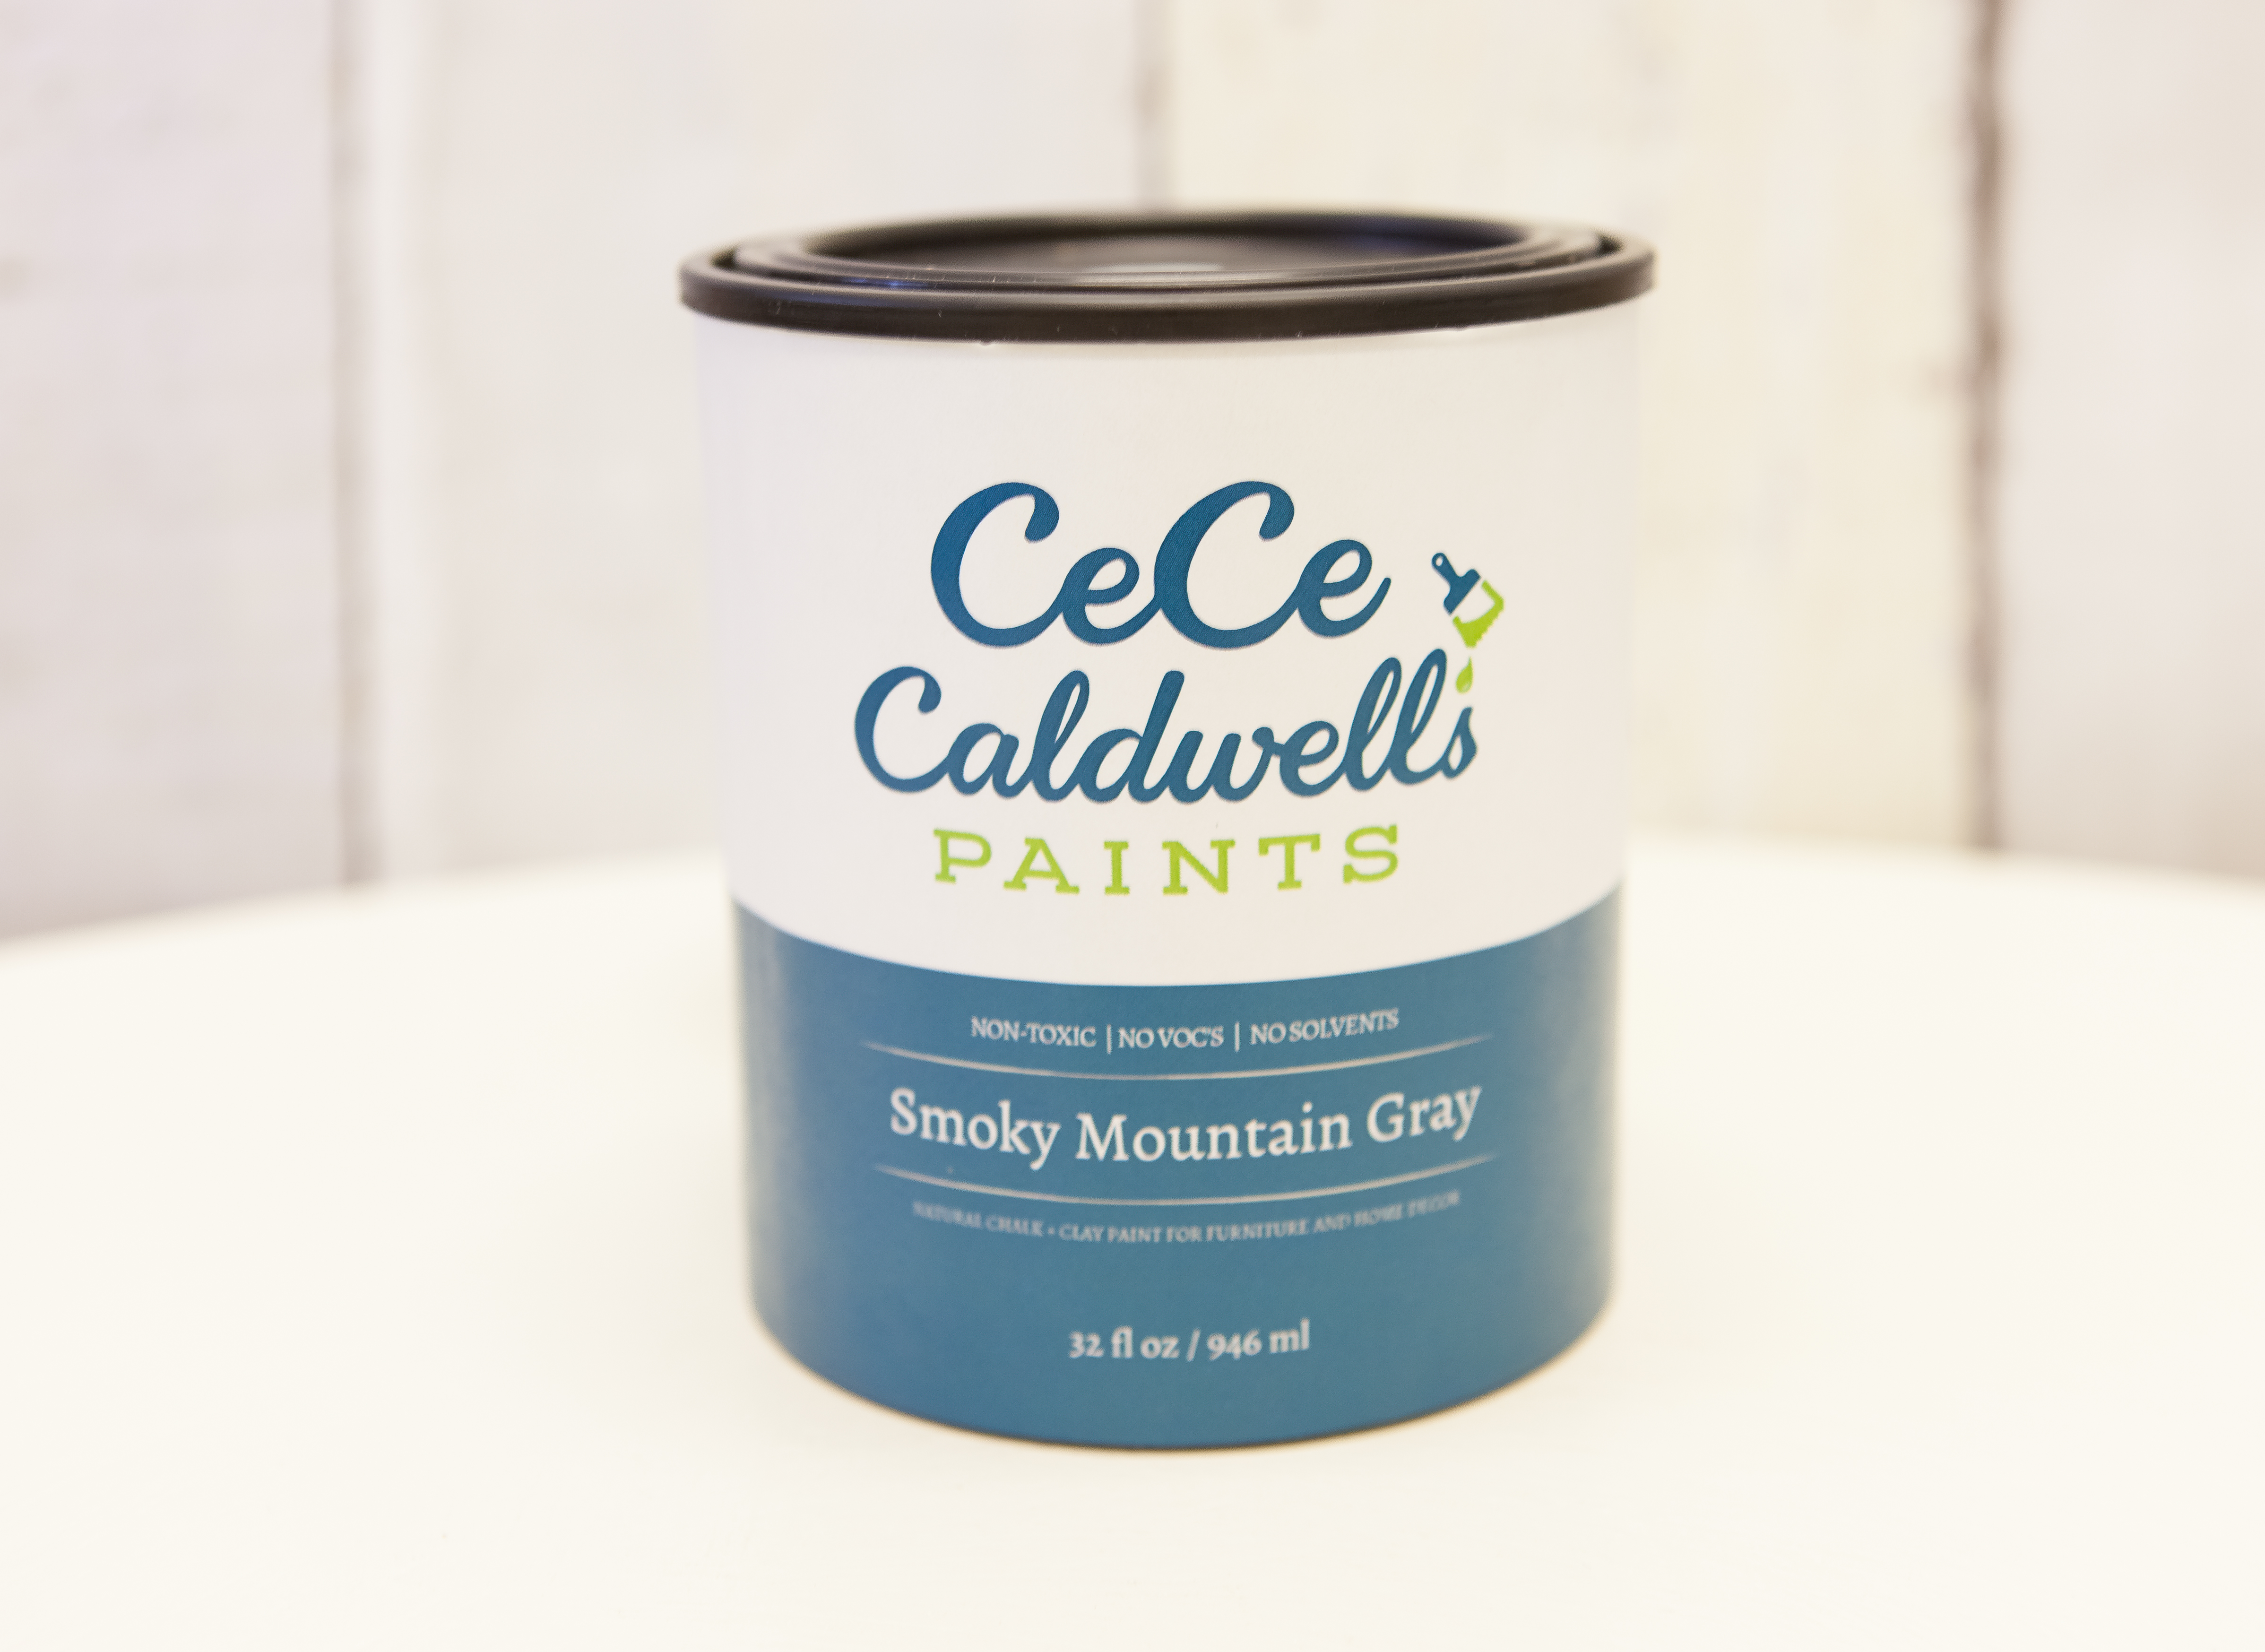 Quot Smoky Mountain Quot Cece Caldwell S Chalk Clay Paint